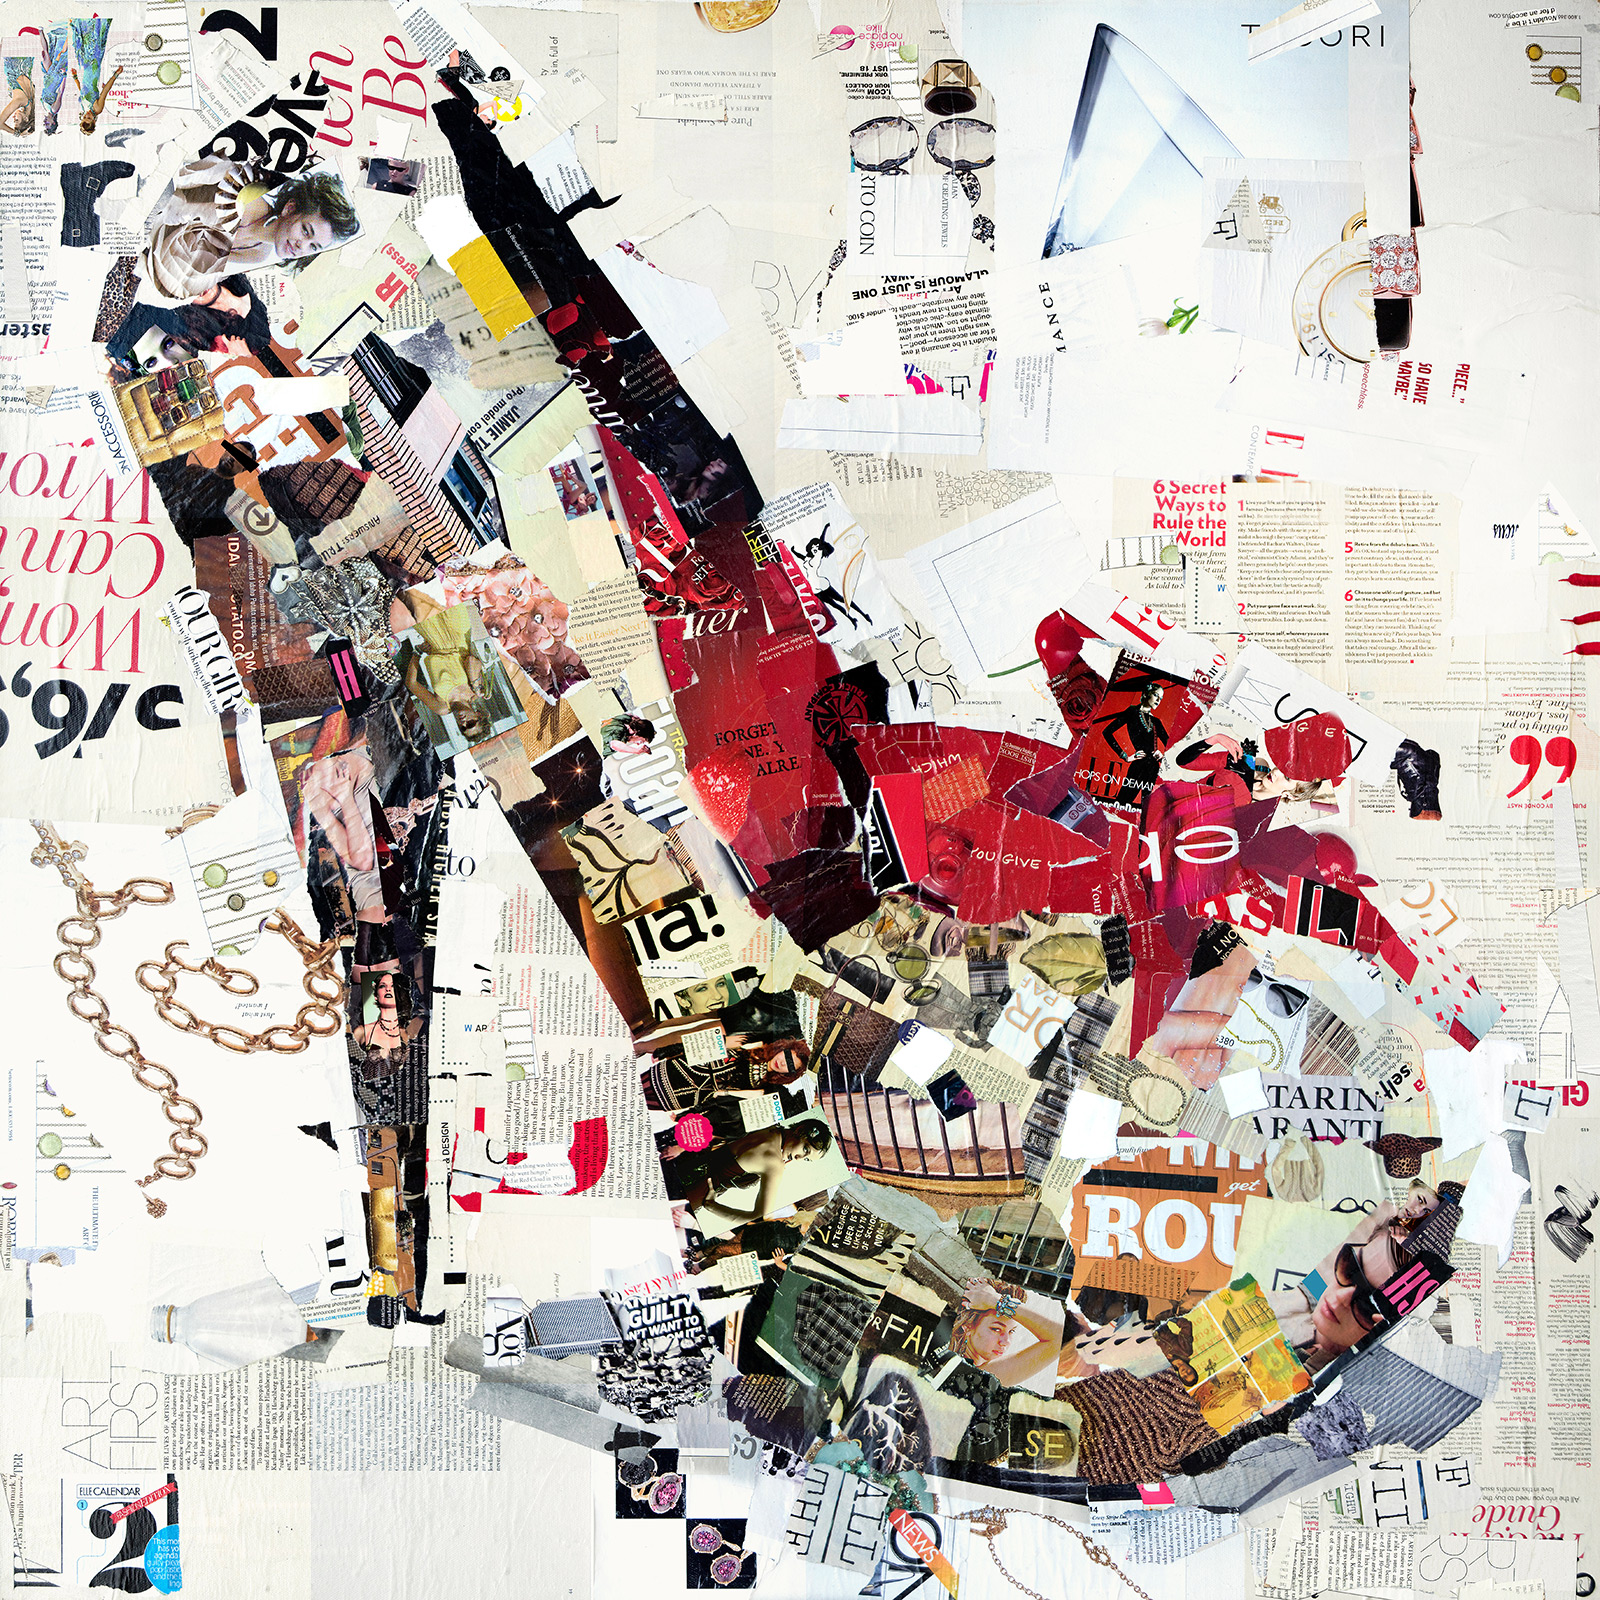 Ways to Rule the World by Derek Gores